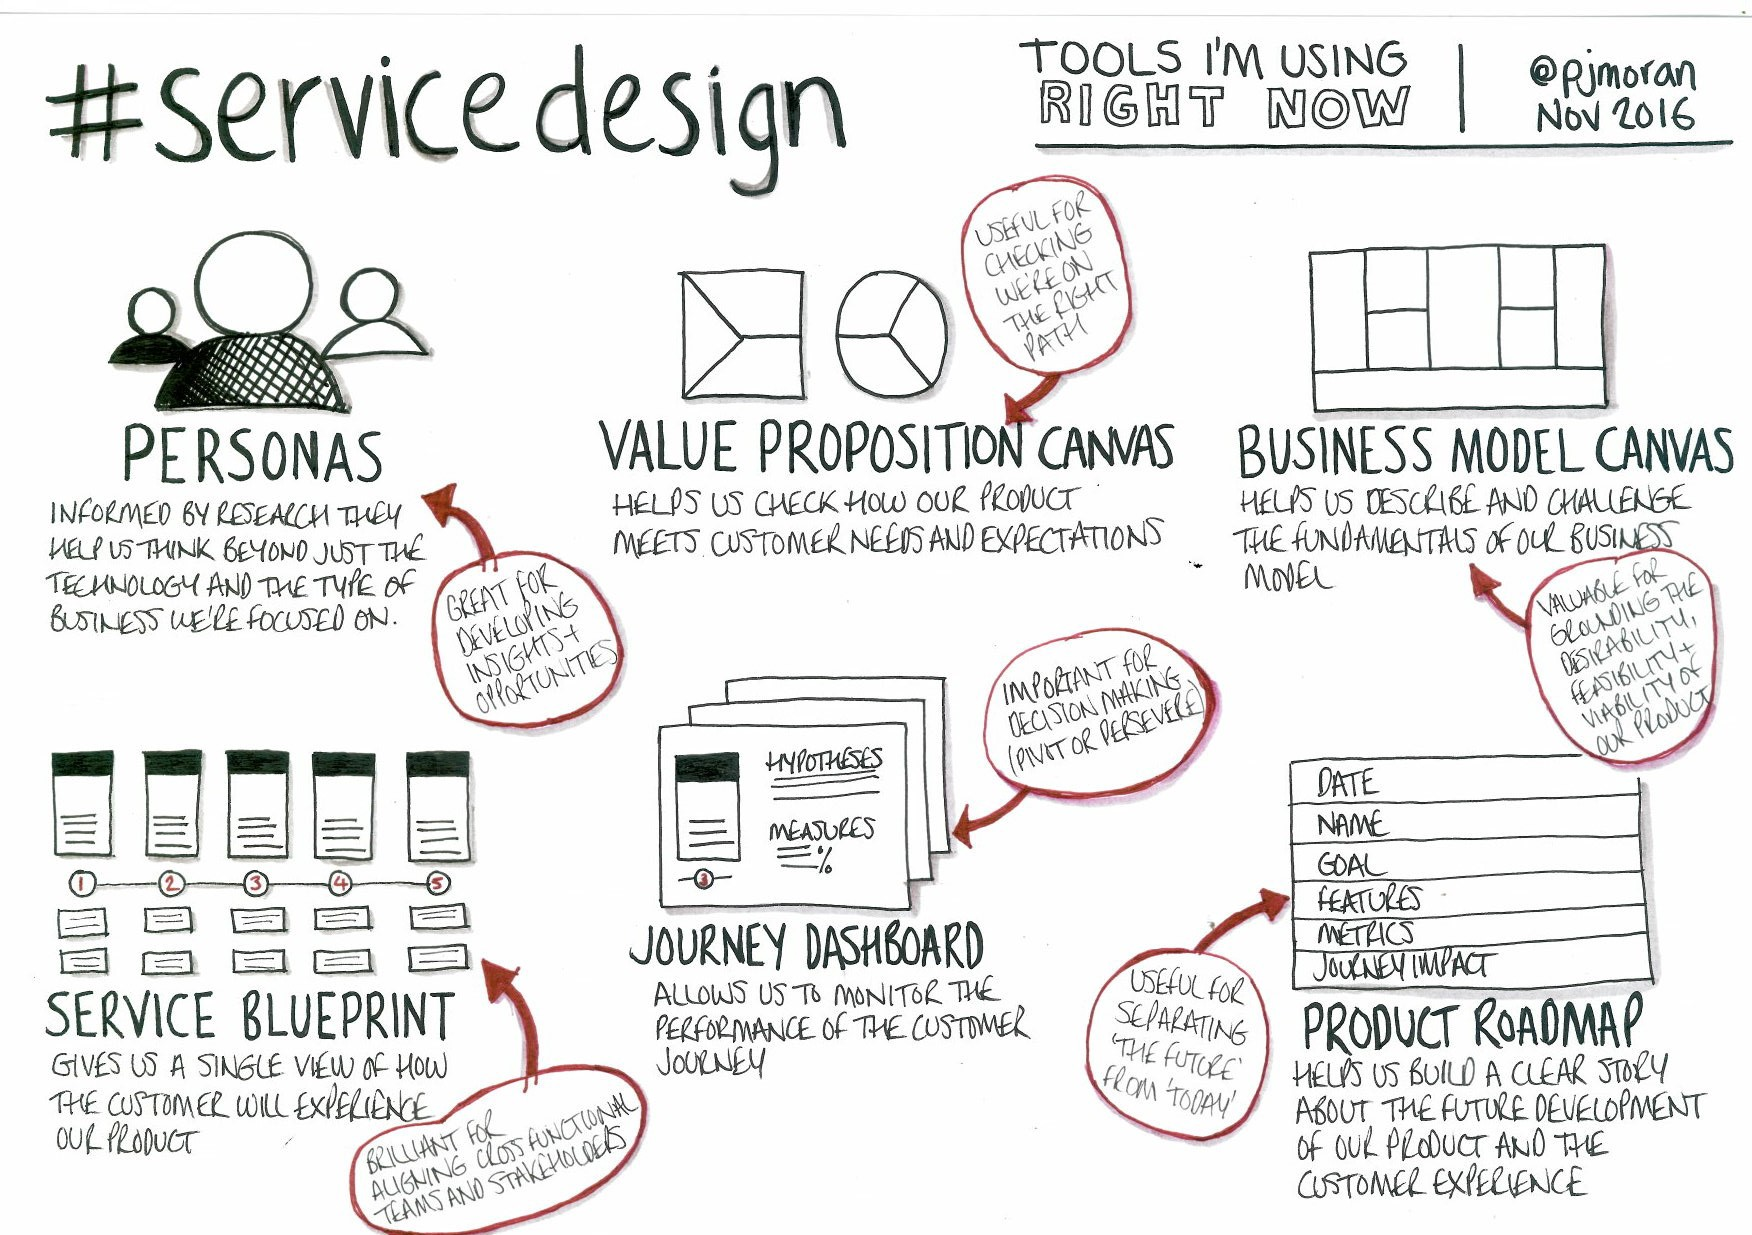 Speed up your team with a service blueprint practical service design a complete service blueprint will show you exactly when and where resources need to be deployed to deliver the customer experience youve designed malvernweather Choice Image